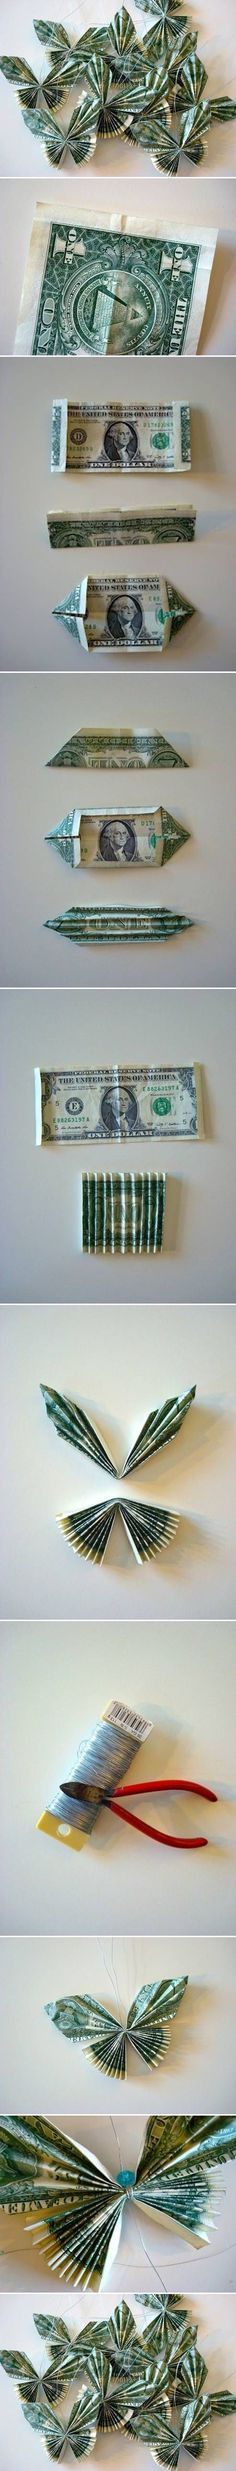 DIY Money Buttefly tutorial. Need 2 try this w/ some trashy-looking 1$ bills!!!